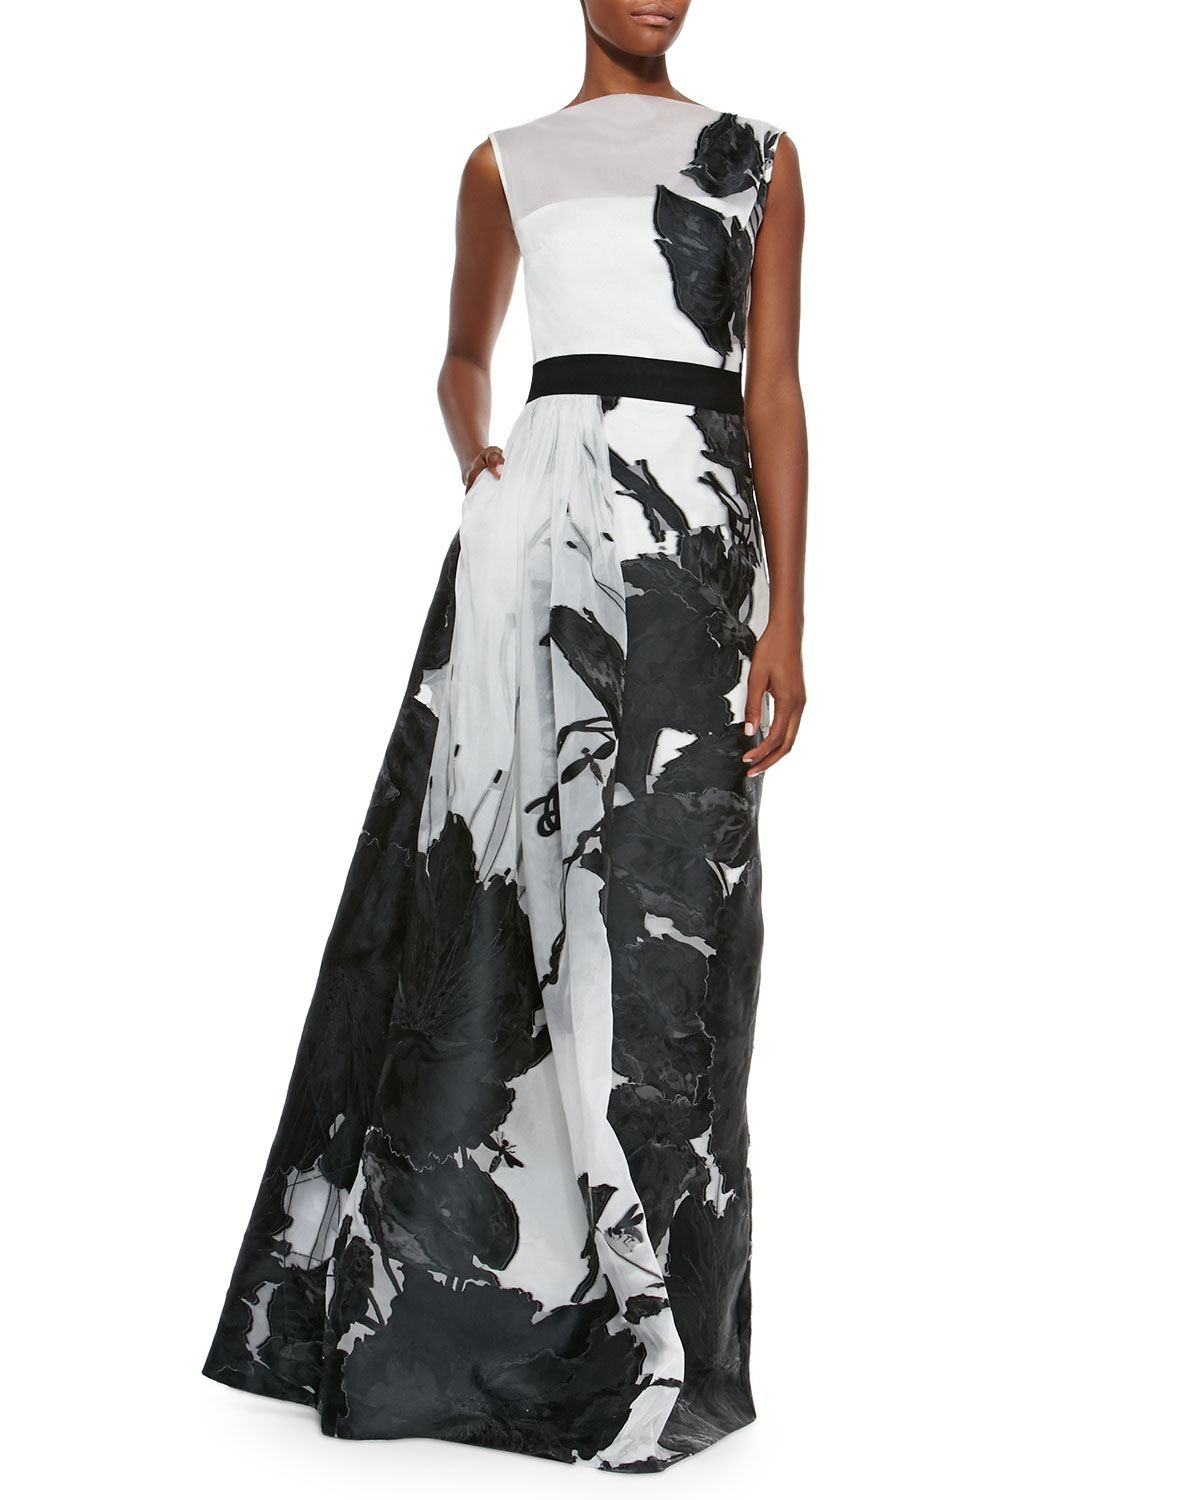 Lyst - St. John Dramatic Floral Fil Coupe Gown in Black